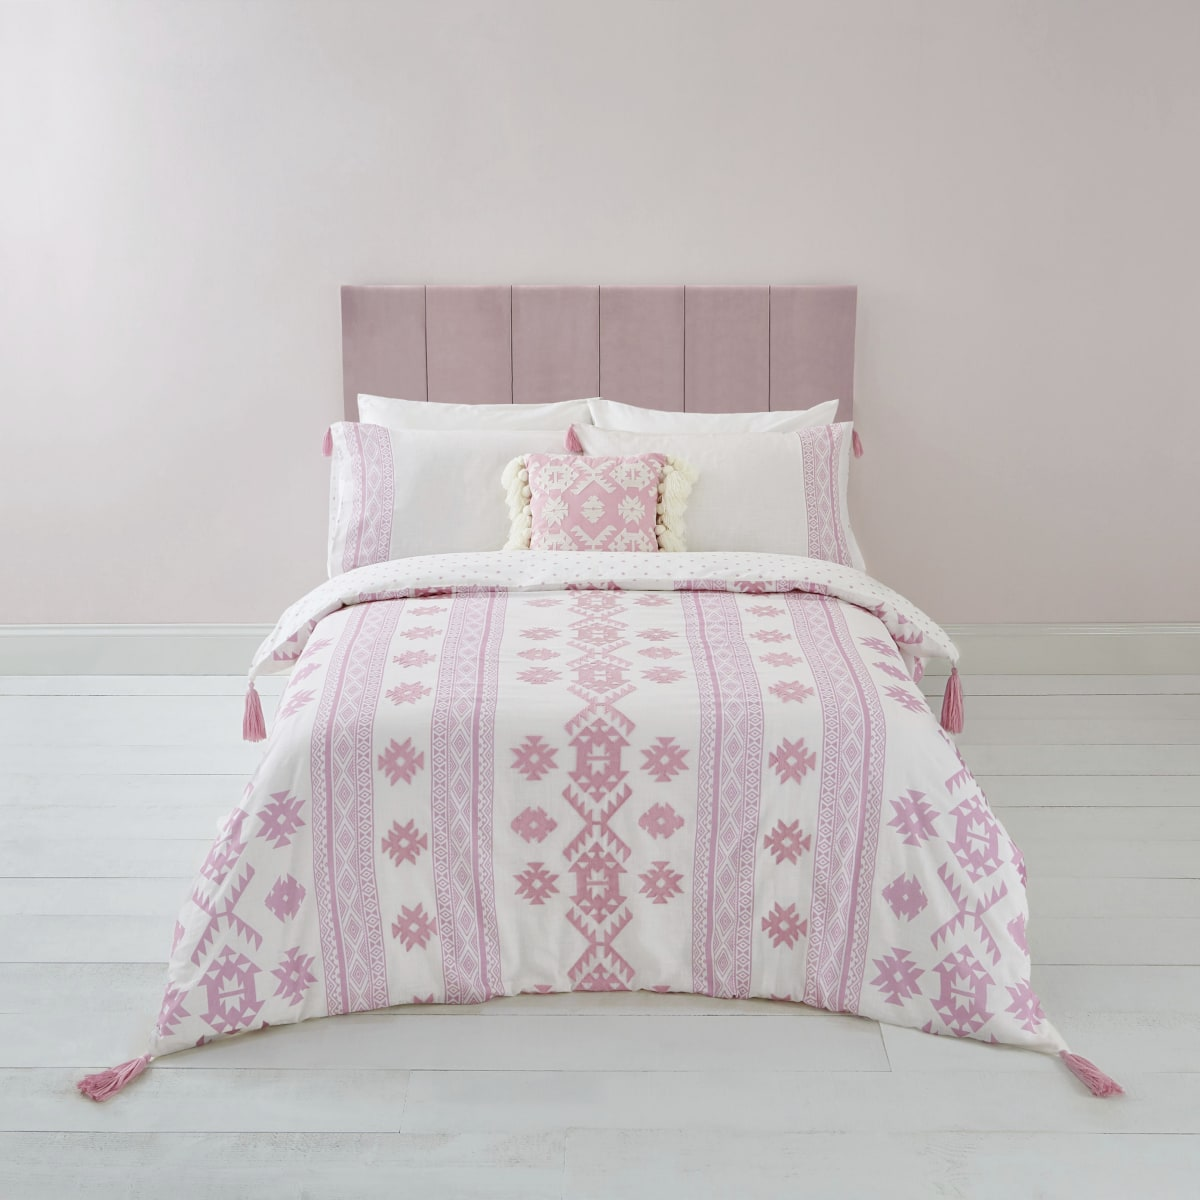 Pink Aztec embroidered king duvet bed set